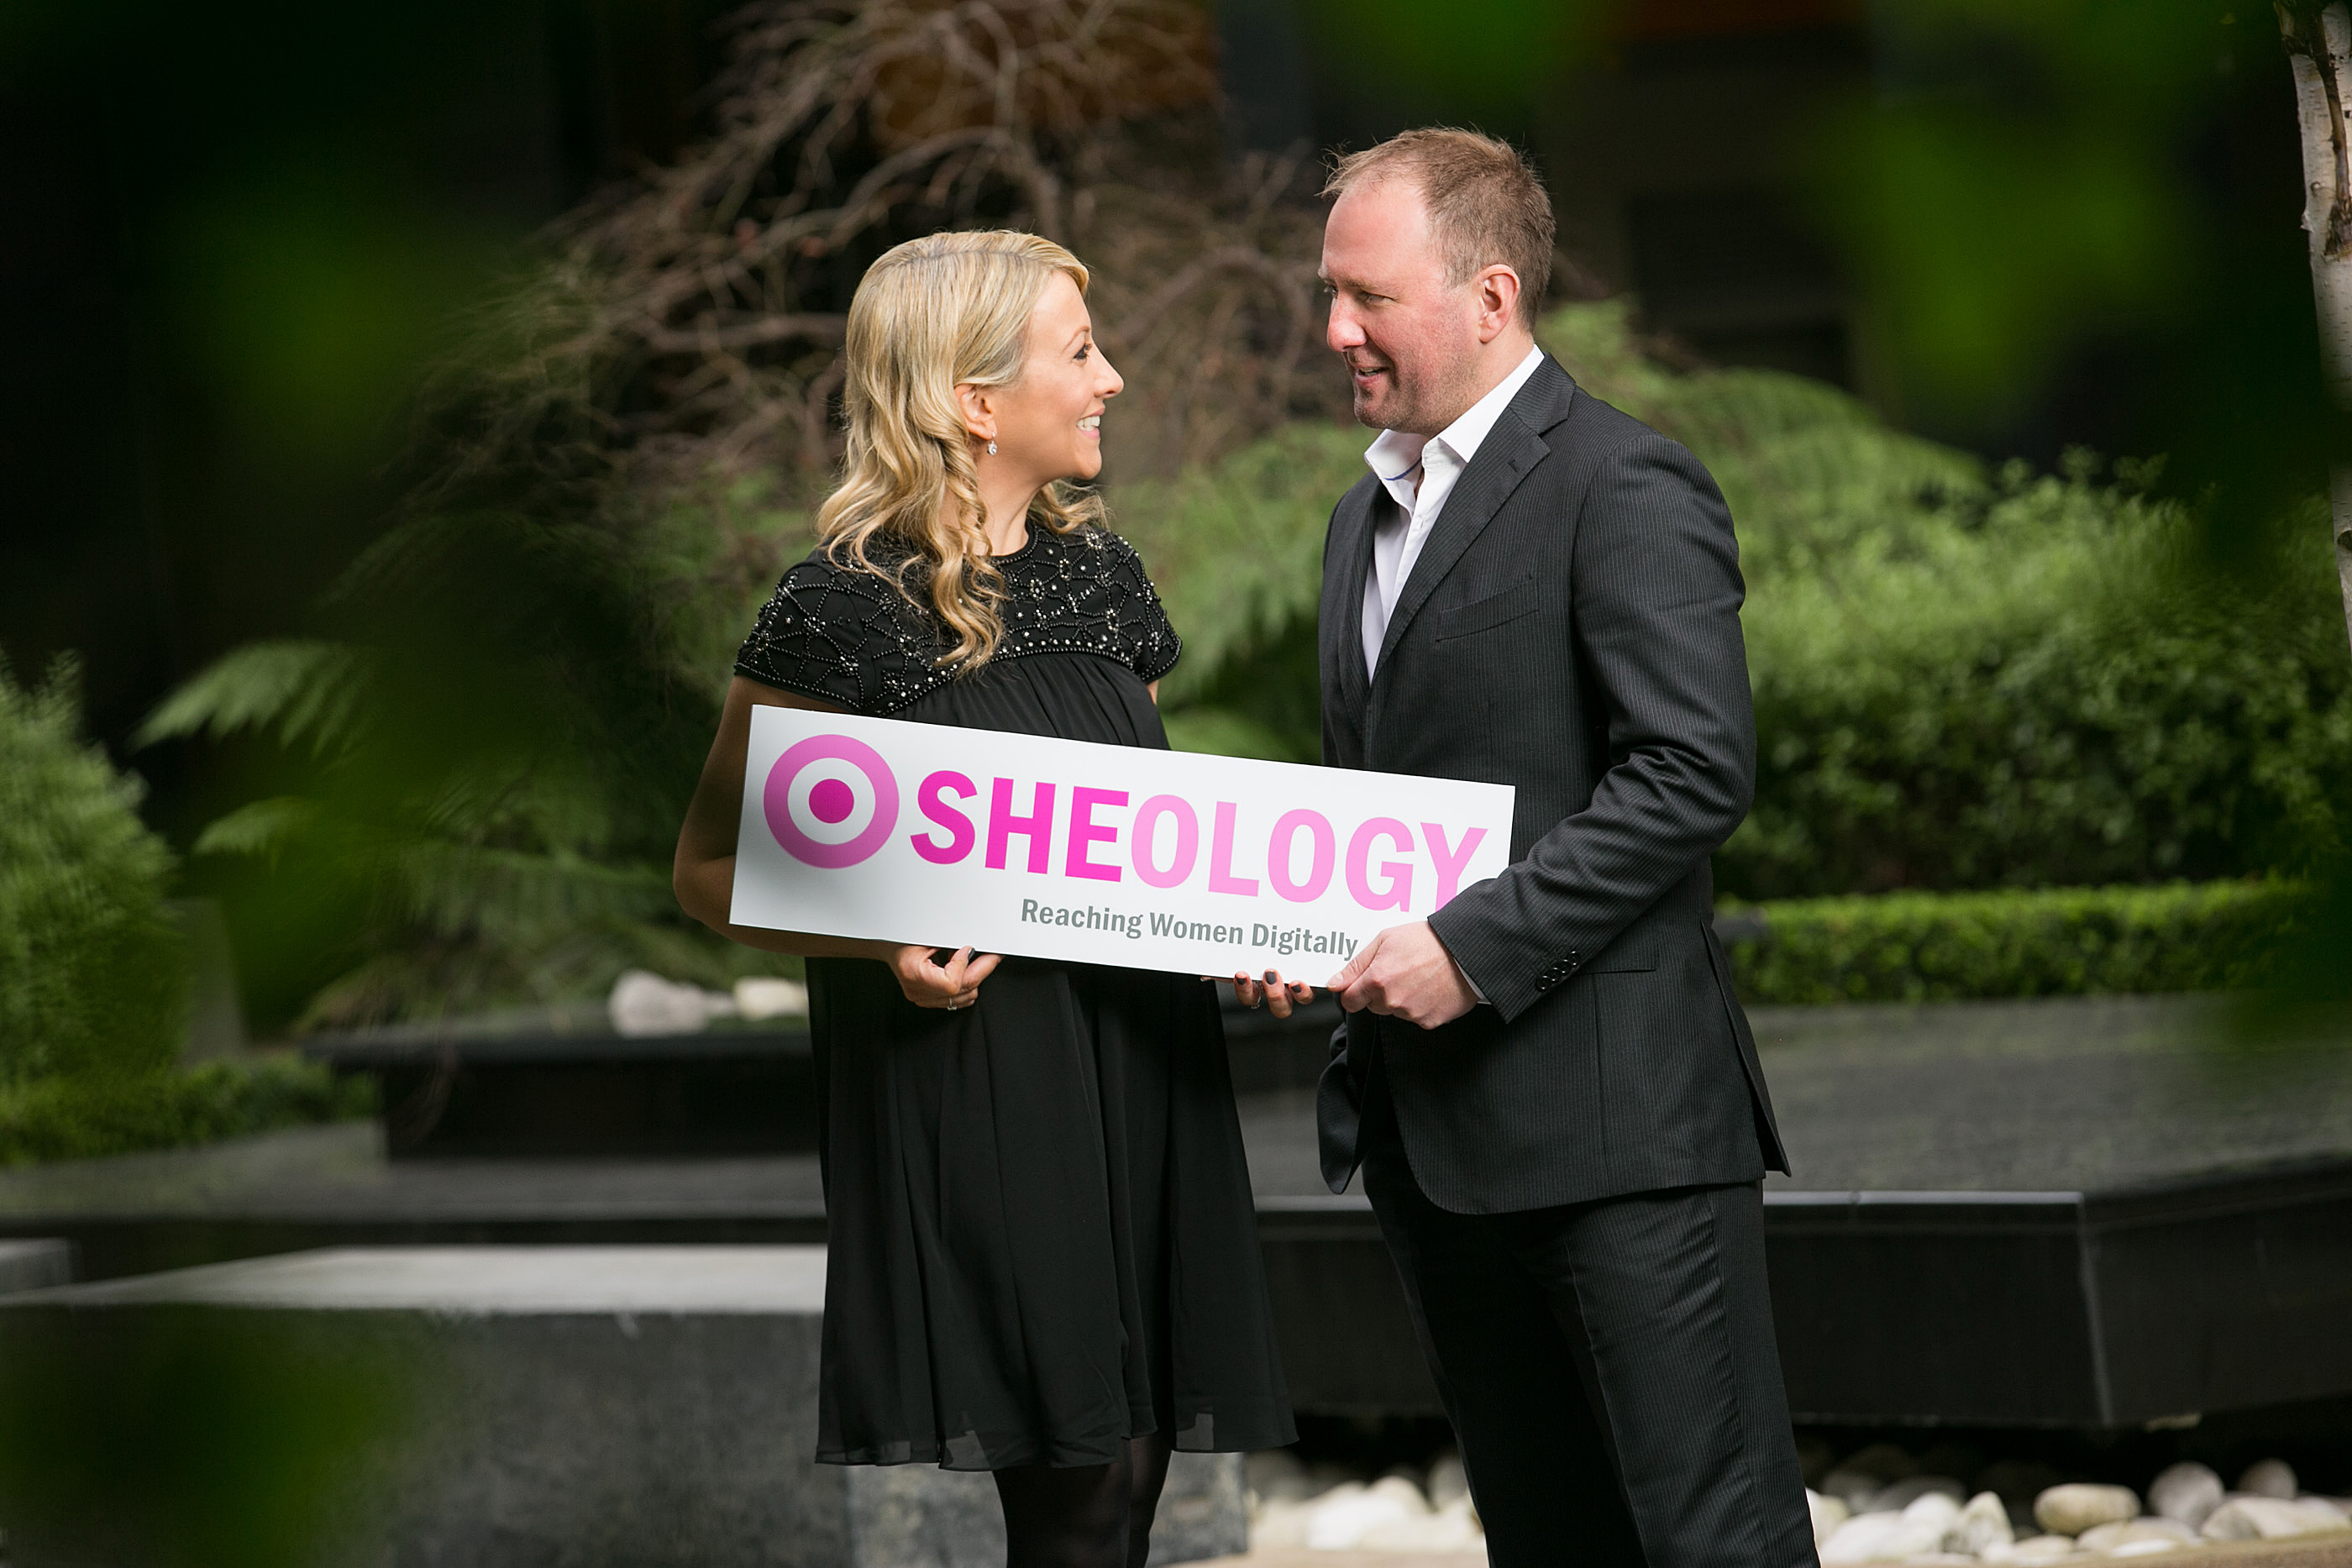 Sandra and Cormac McKenna, co-founders of Sheology Digital celebrate as the company announces the country's biggest pure digital female reach of 1,000,000 unique users per month. Sheology is home to three female Irish sites – MummyPages.ie, MagicMum.com, SHEmazing.net.